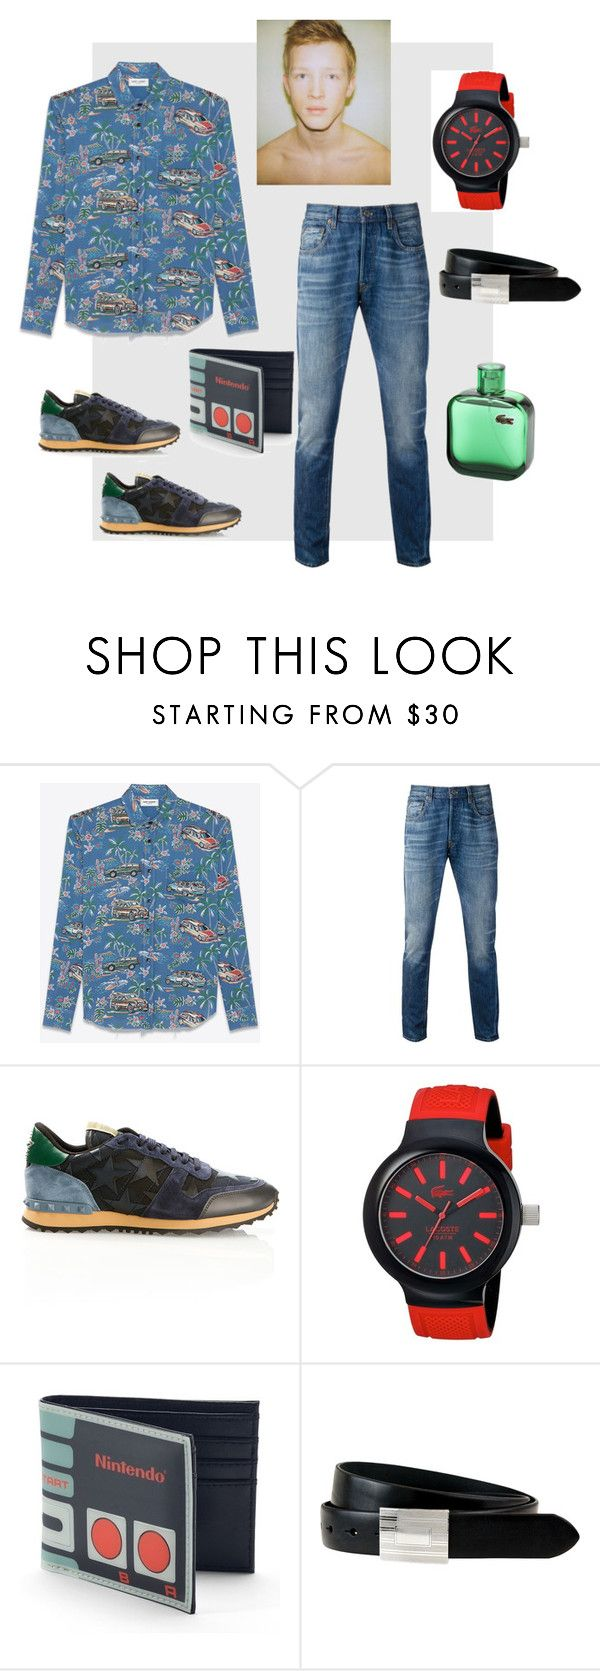 menlook by malishevan on Polyvore featuring Yves Saint Laurent, Levi's, Valentino, Lacoste, Nintendo, The British Belt Company, men's fashion and menswear